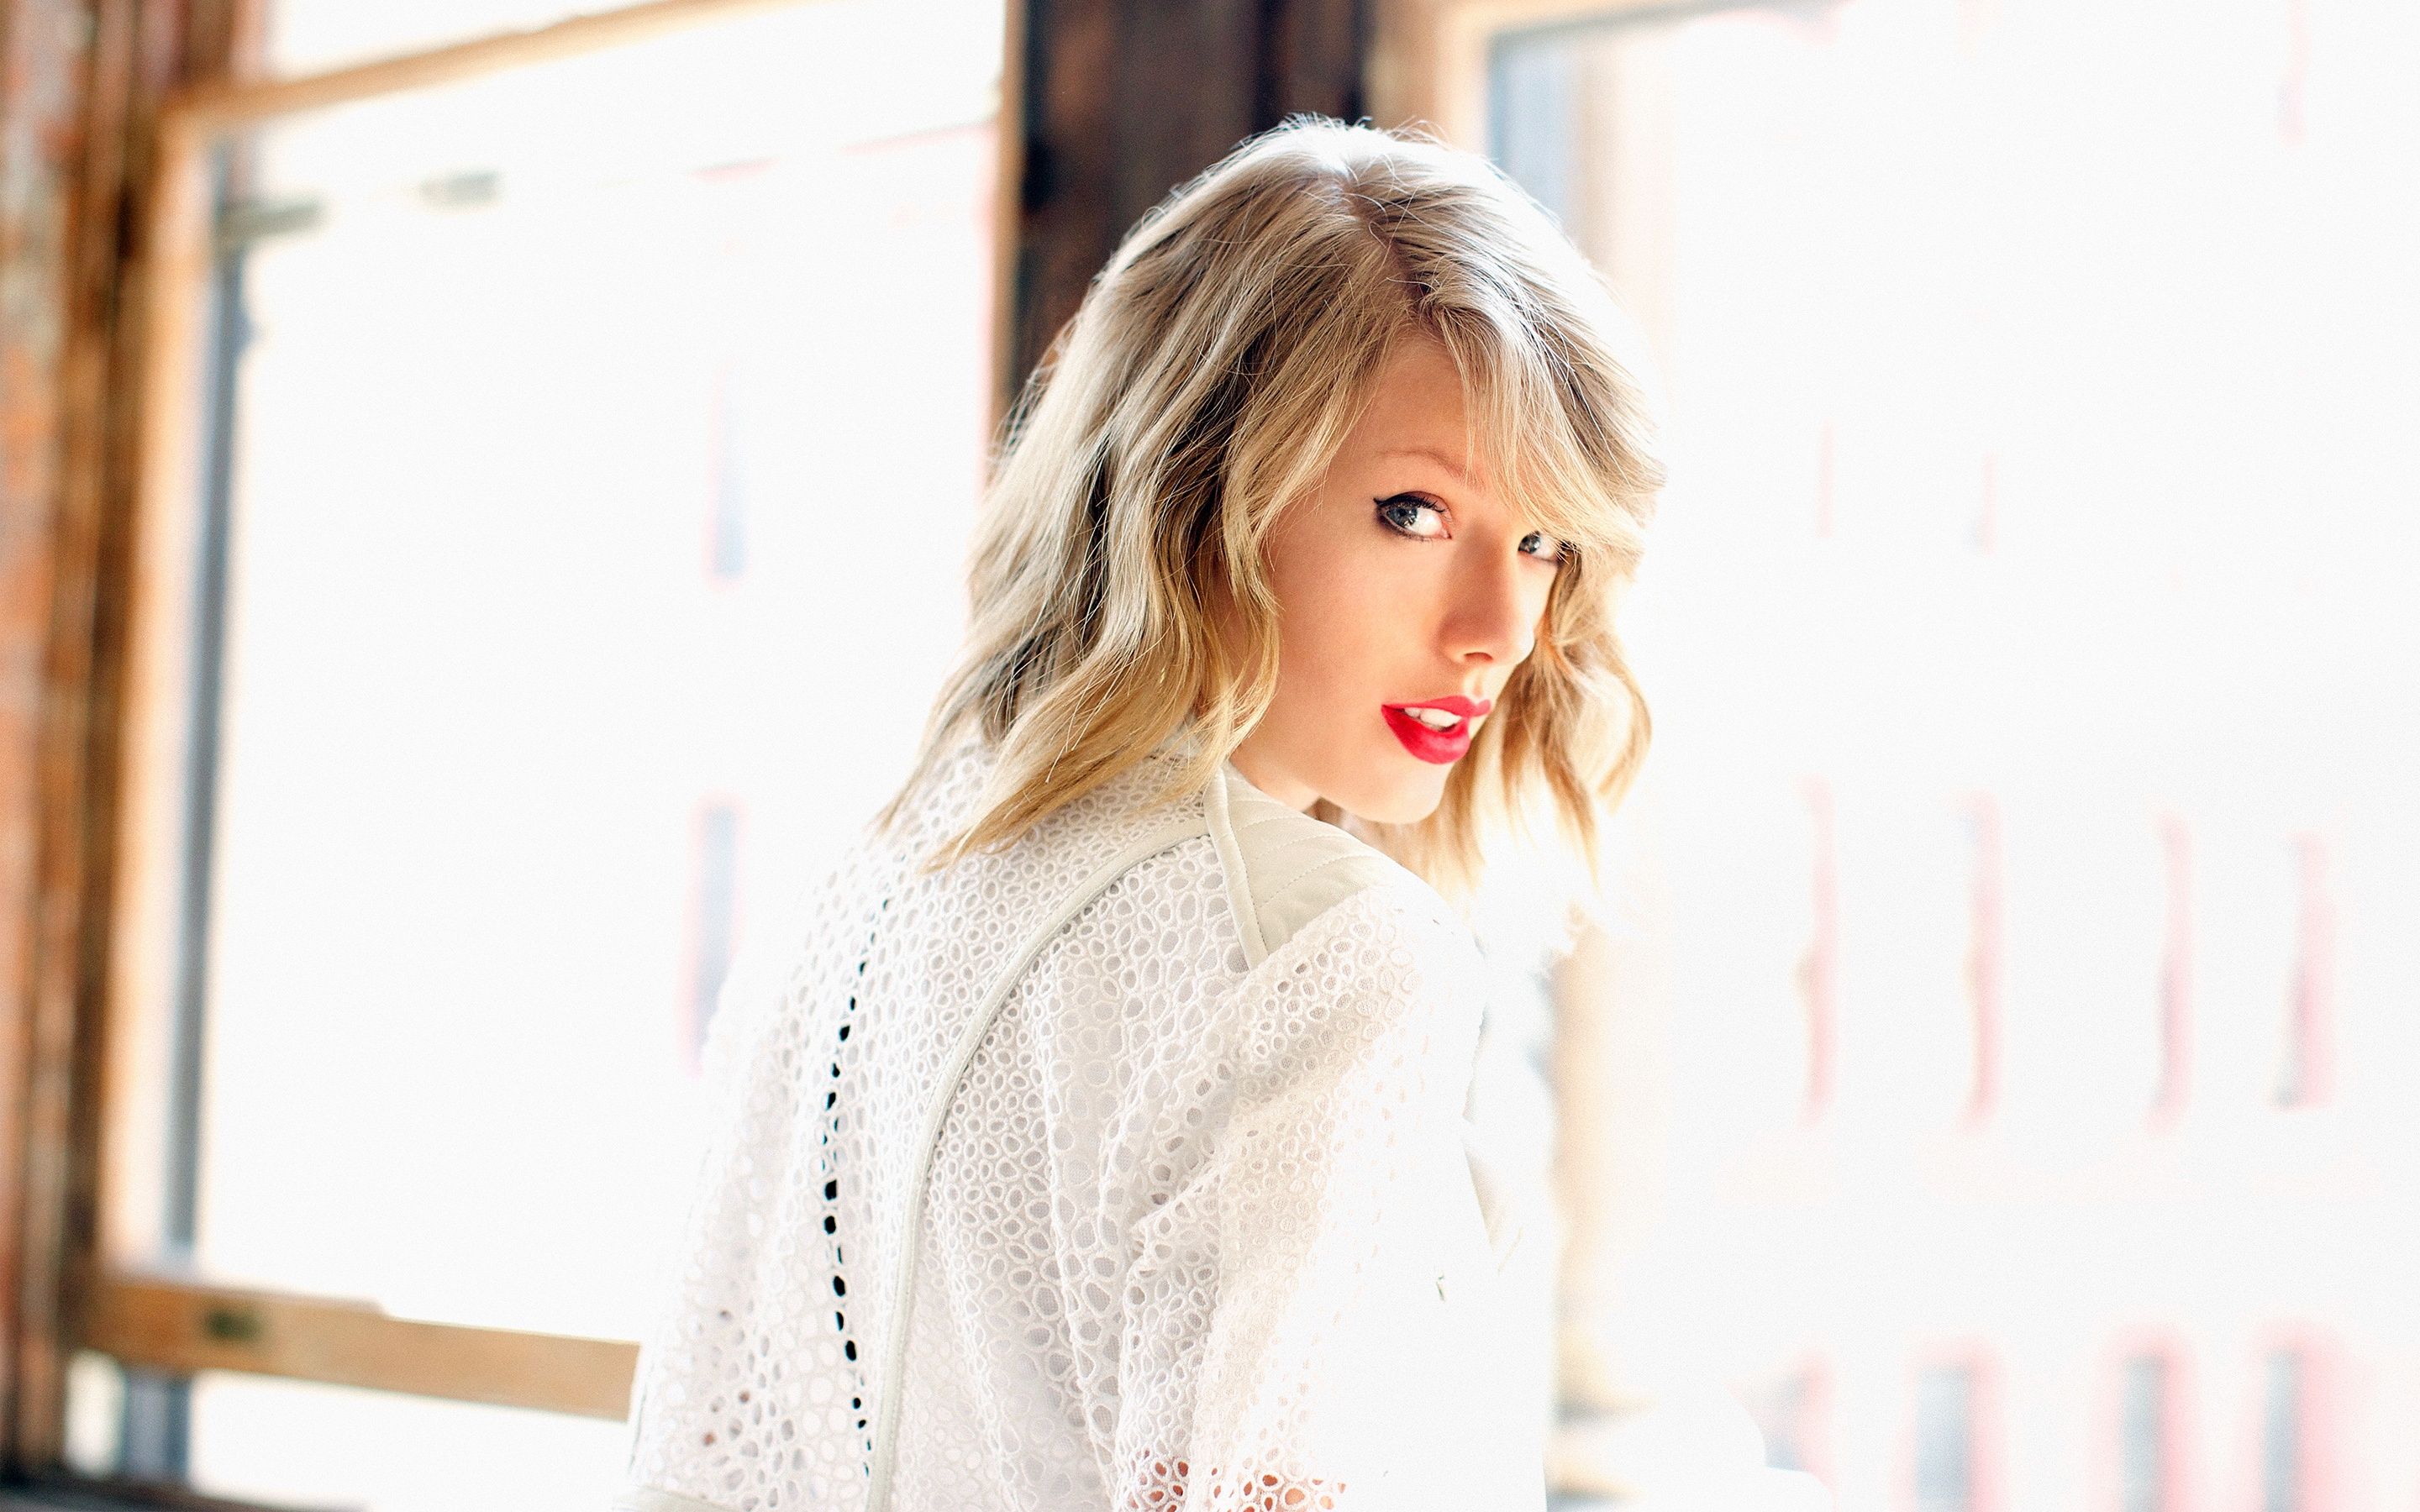 Taylor Swift 2015 Wallpapers HD Wallpapers 2880x1800